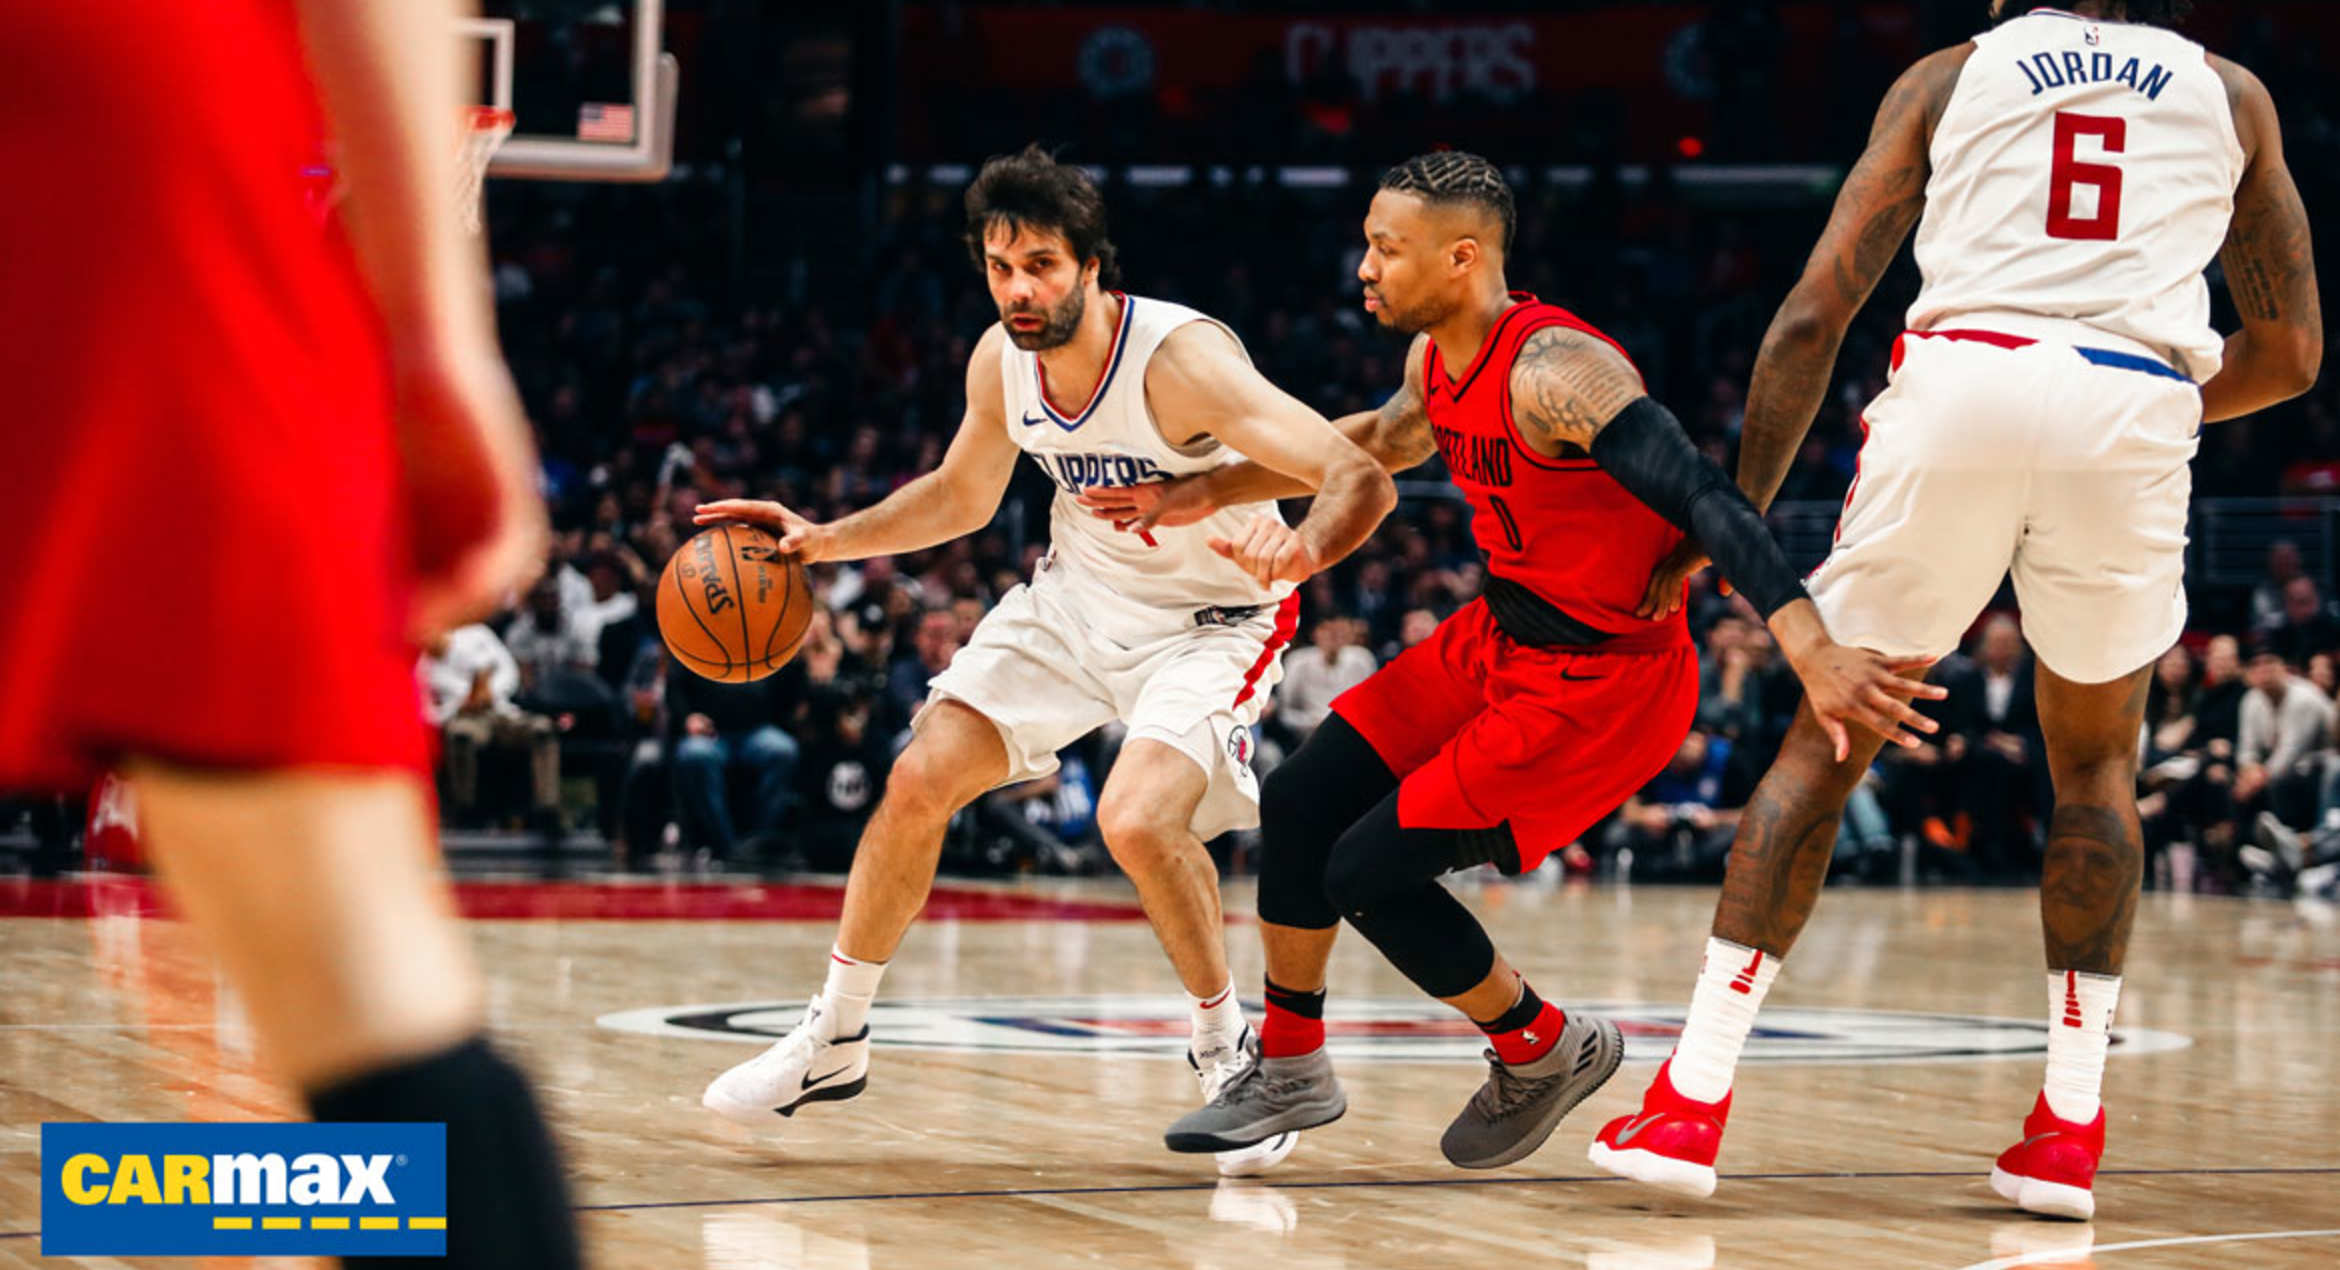 Gameday Report: Clippers vs. Blazers